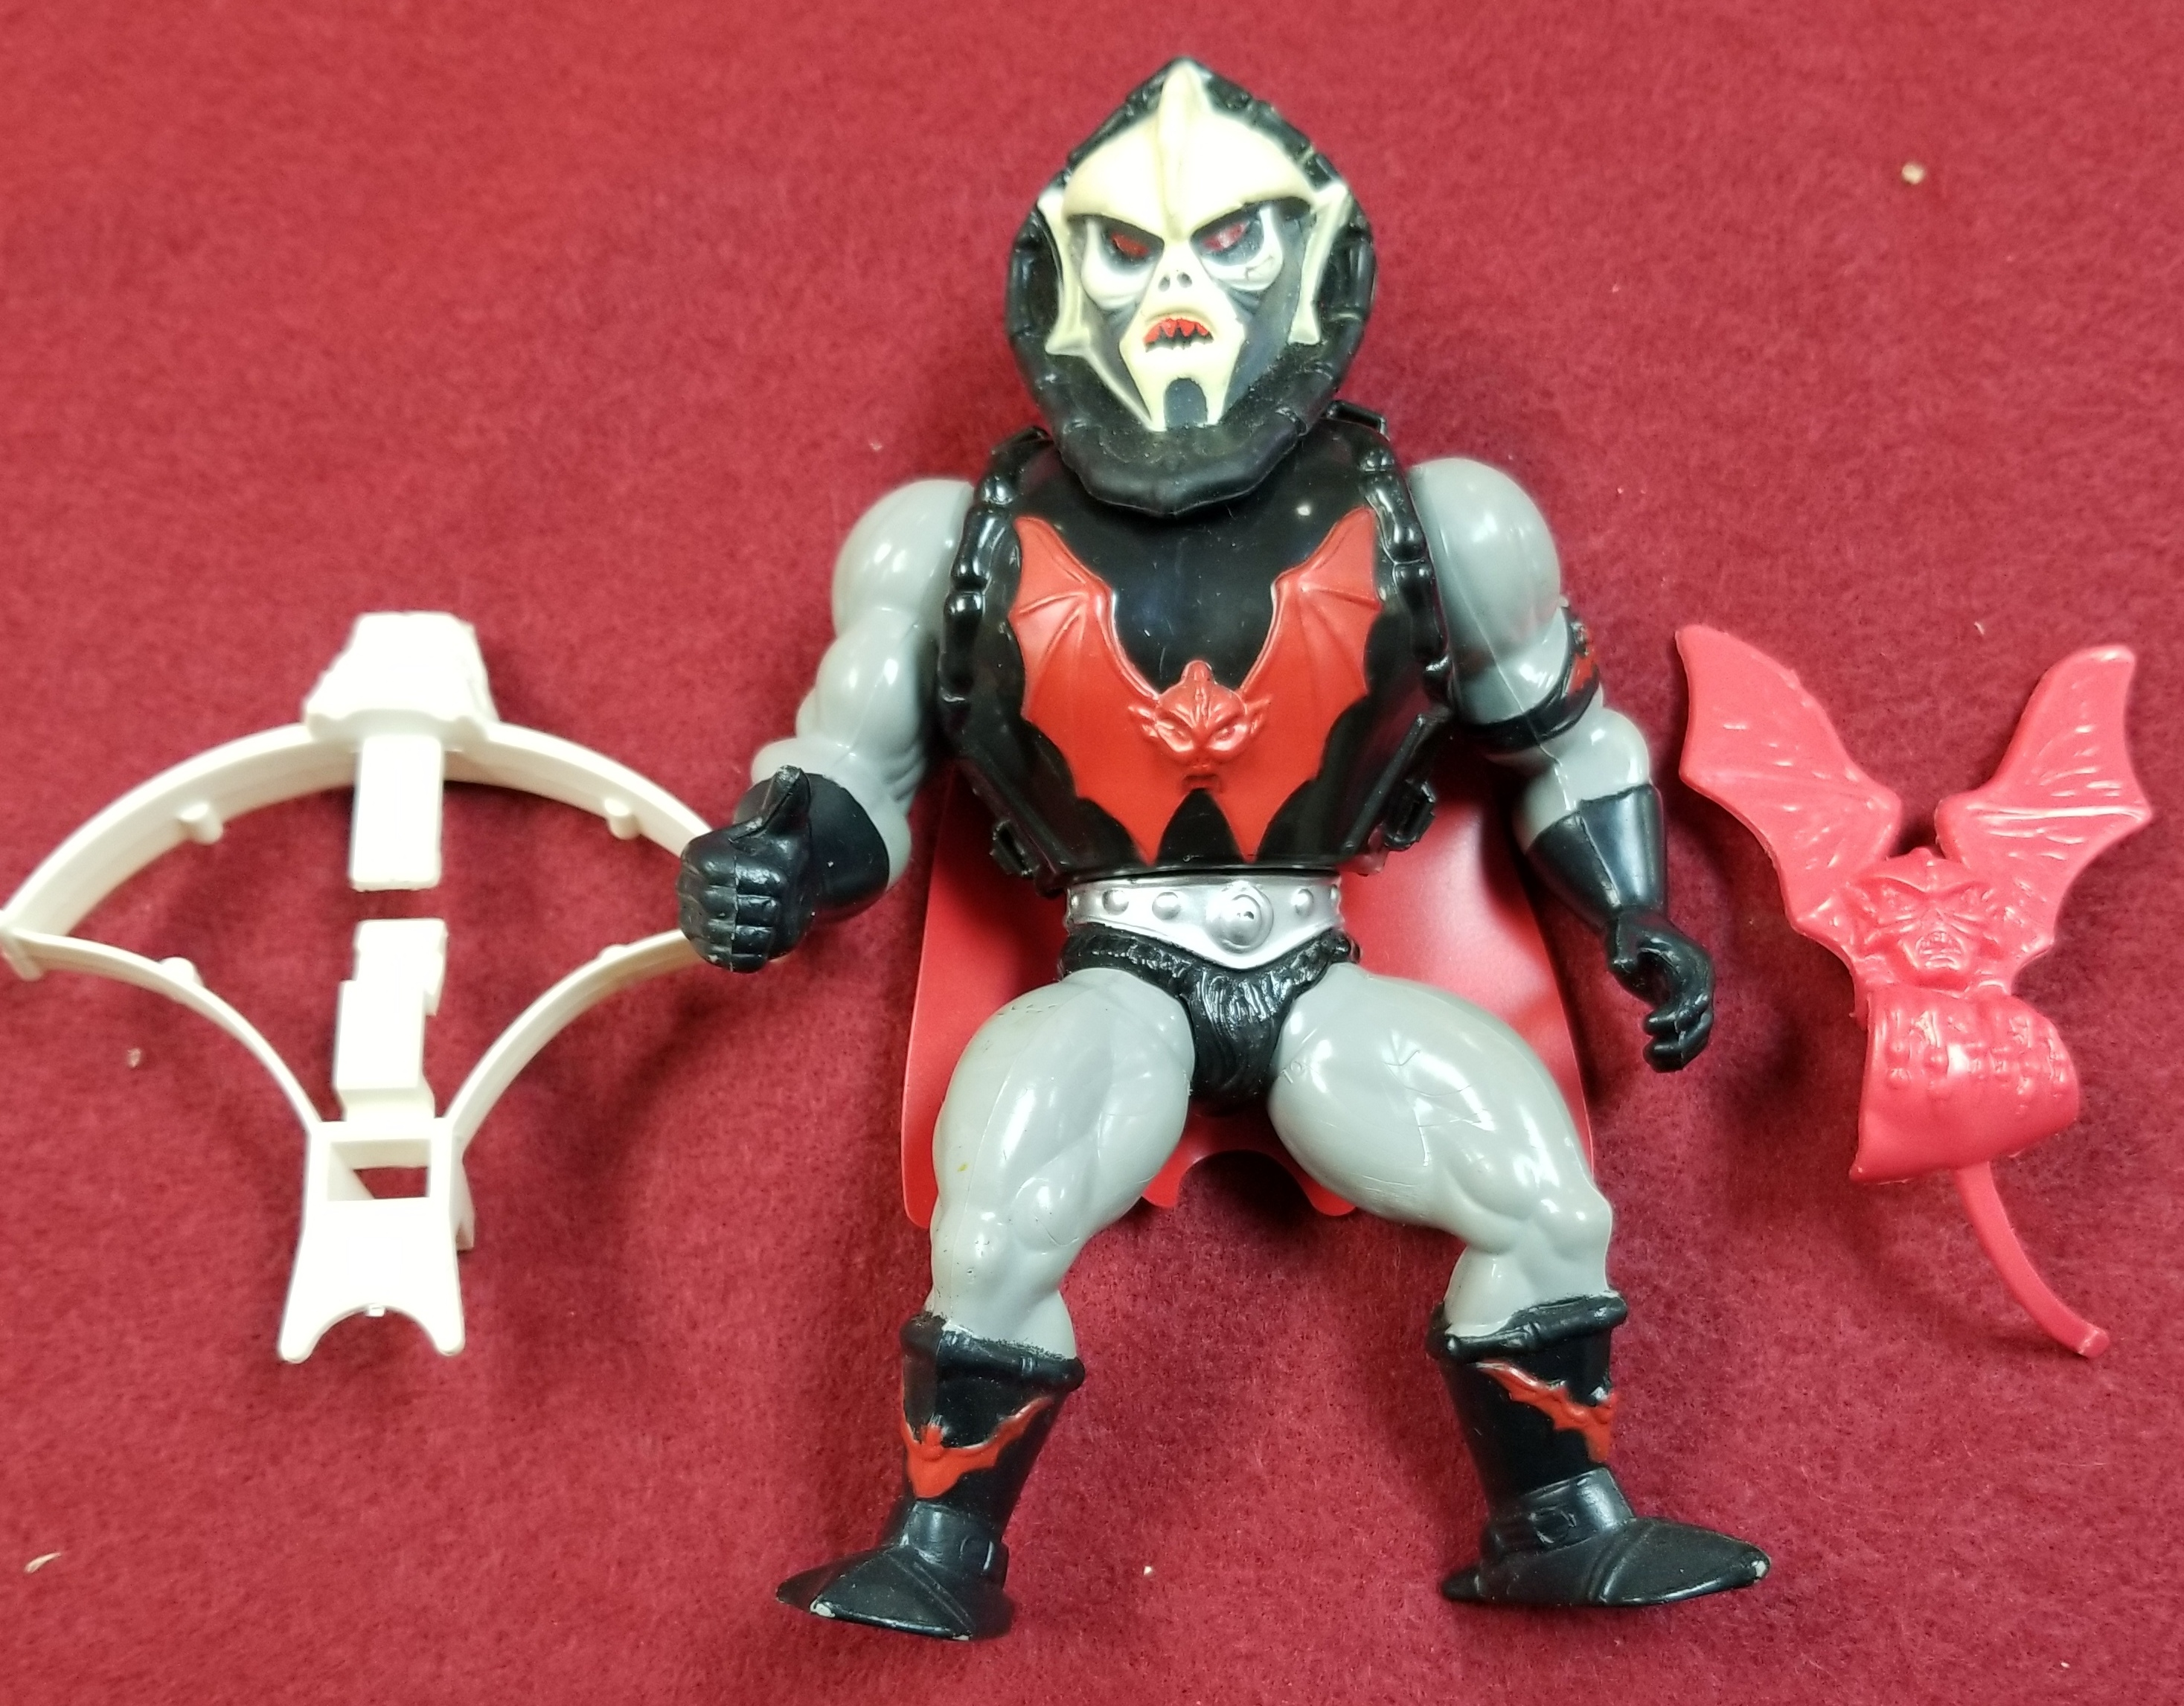 TOYS/COLLECTIBLES: MASTERS OF THE UNIVERSE CLASSIC FIGURES - HORDAK